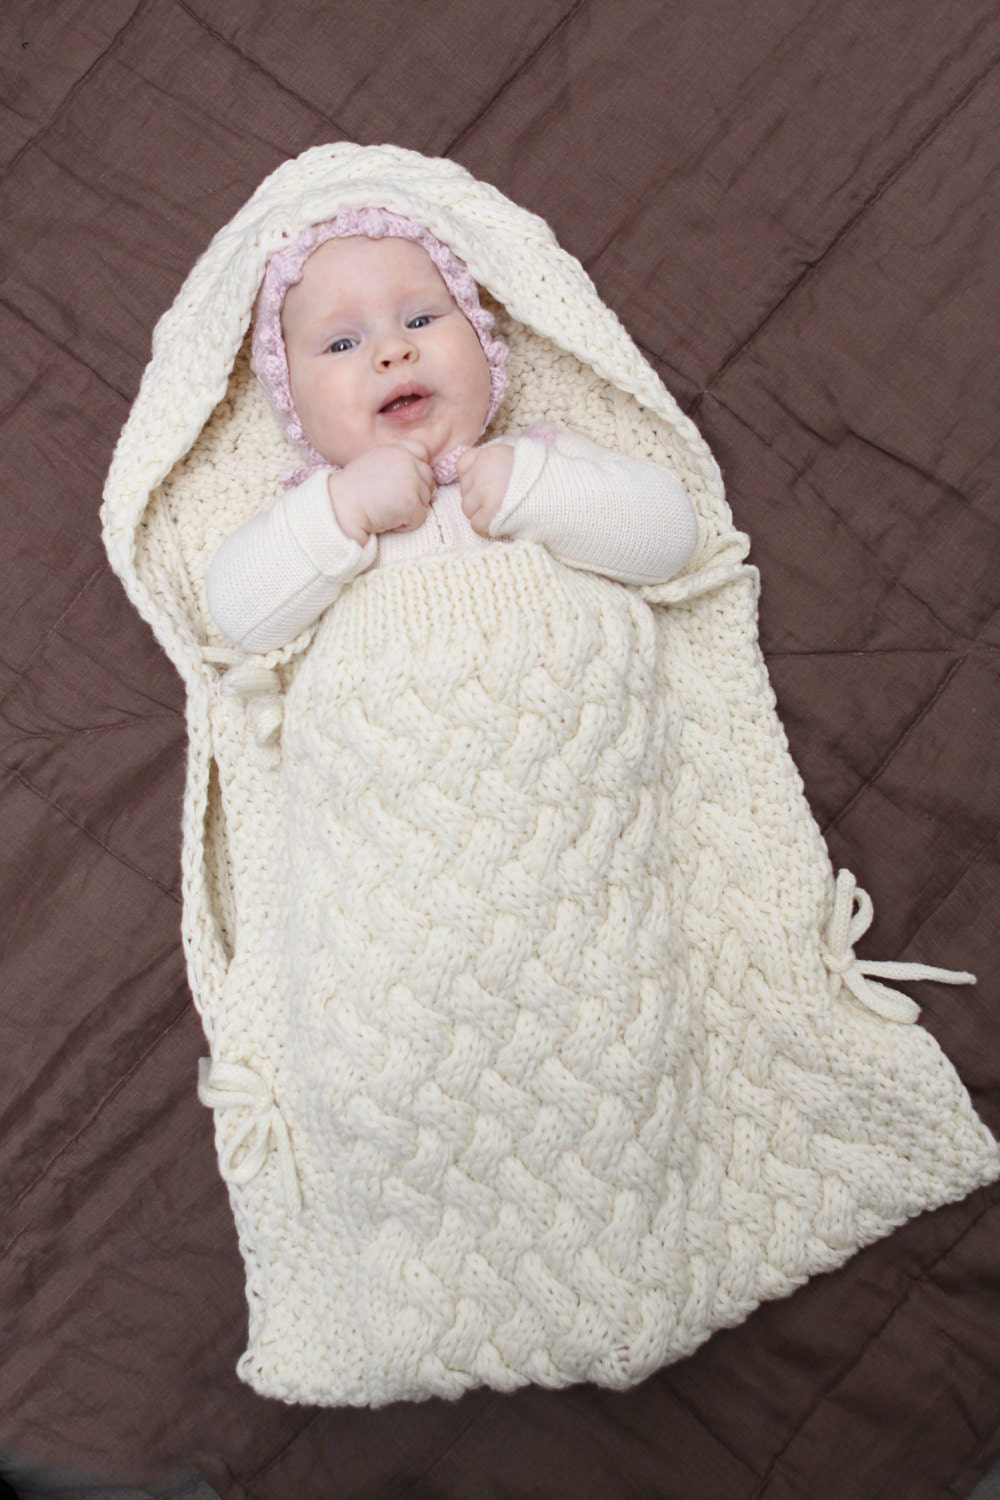 Baby Gift Sack : Baby sleeping bag cocoon gift for new shower cable